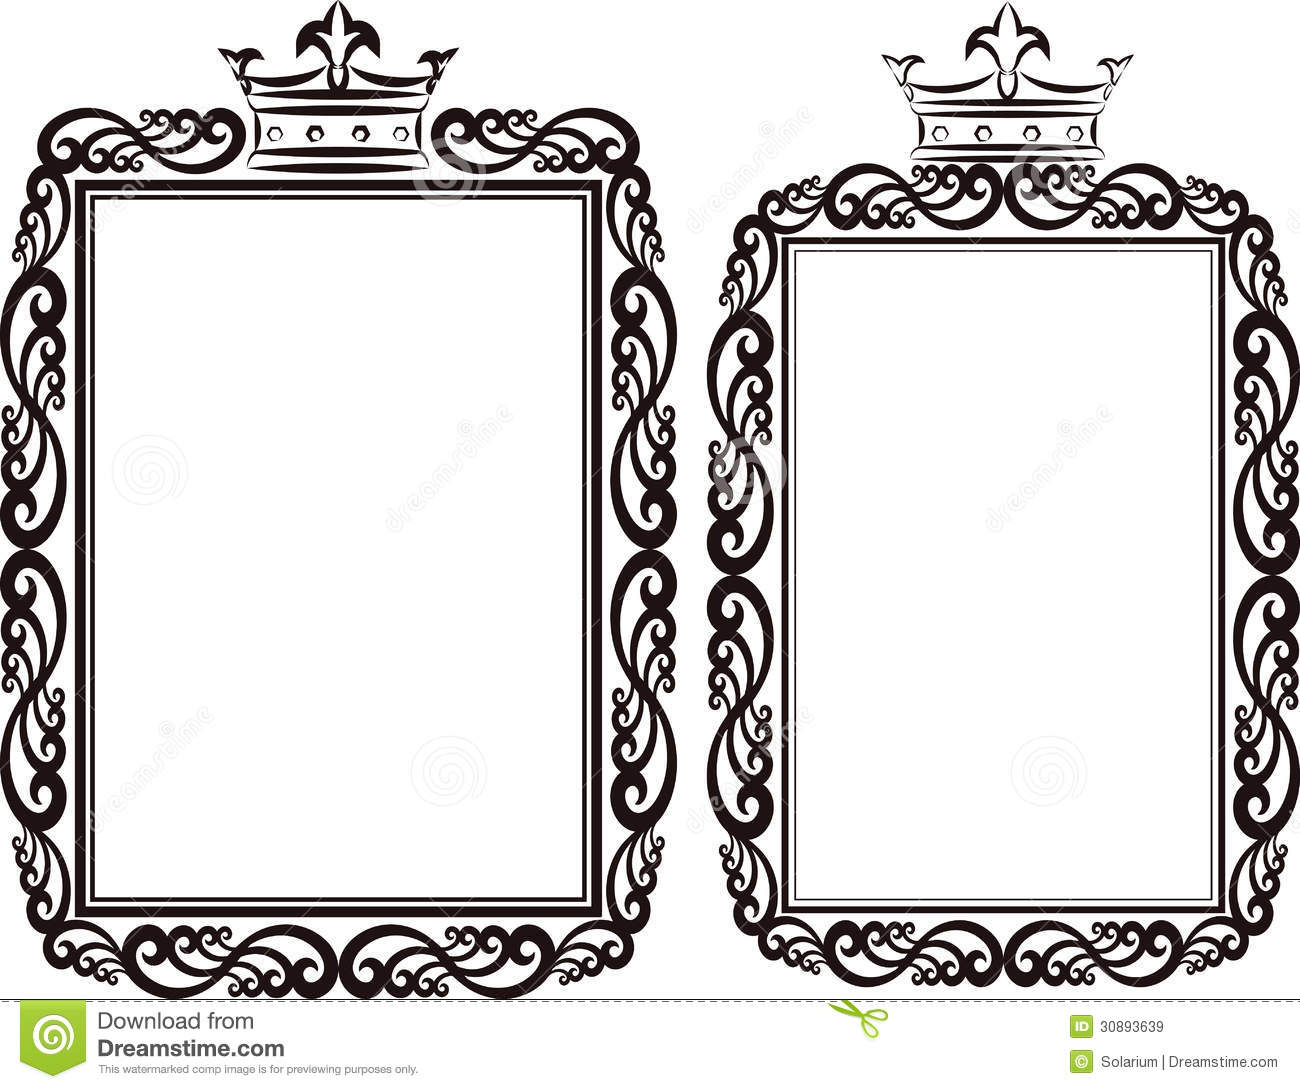 Royal border stock vector. Image of contour, crowns